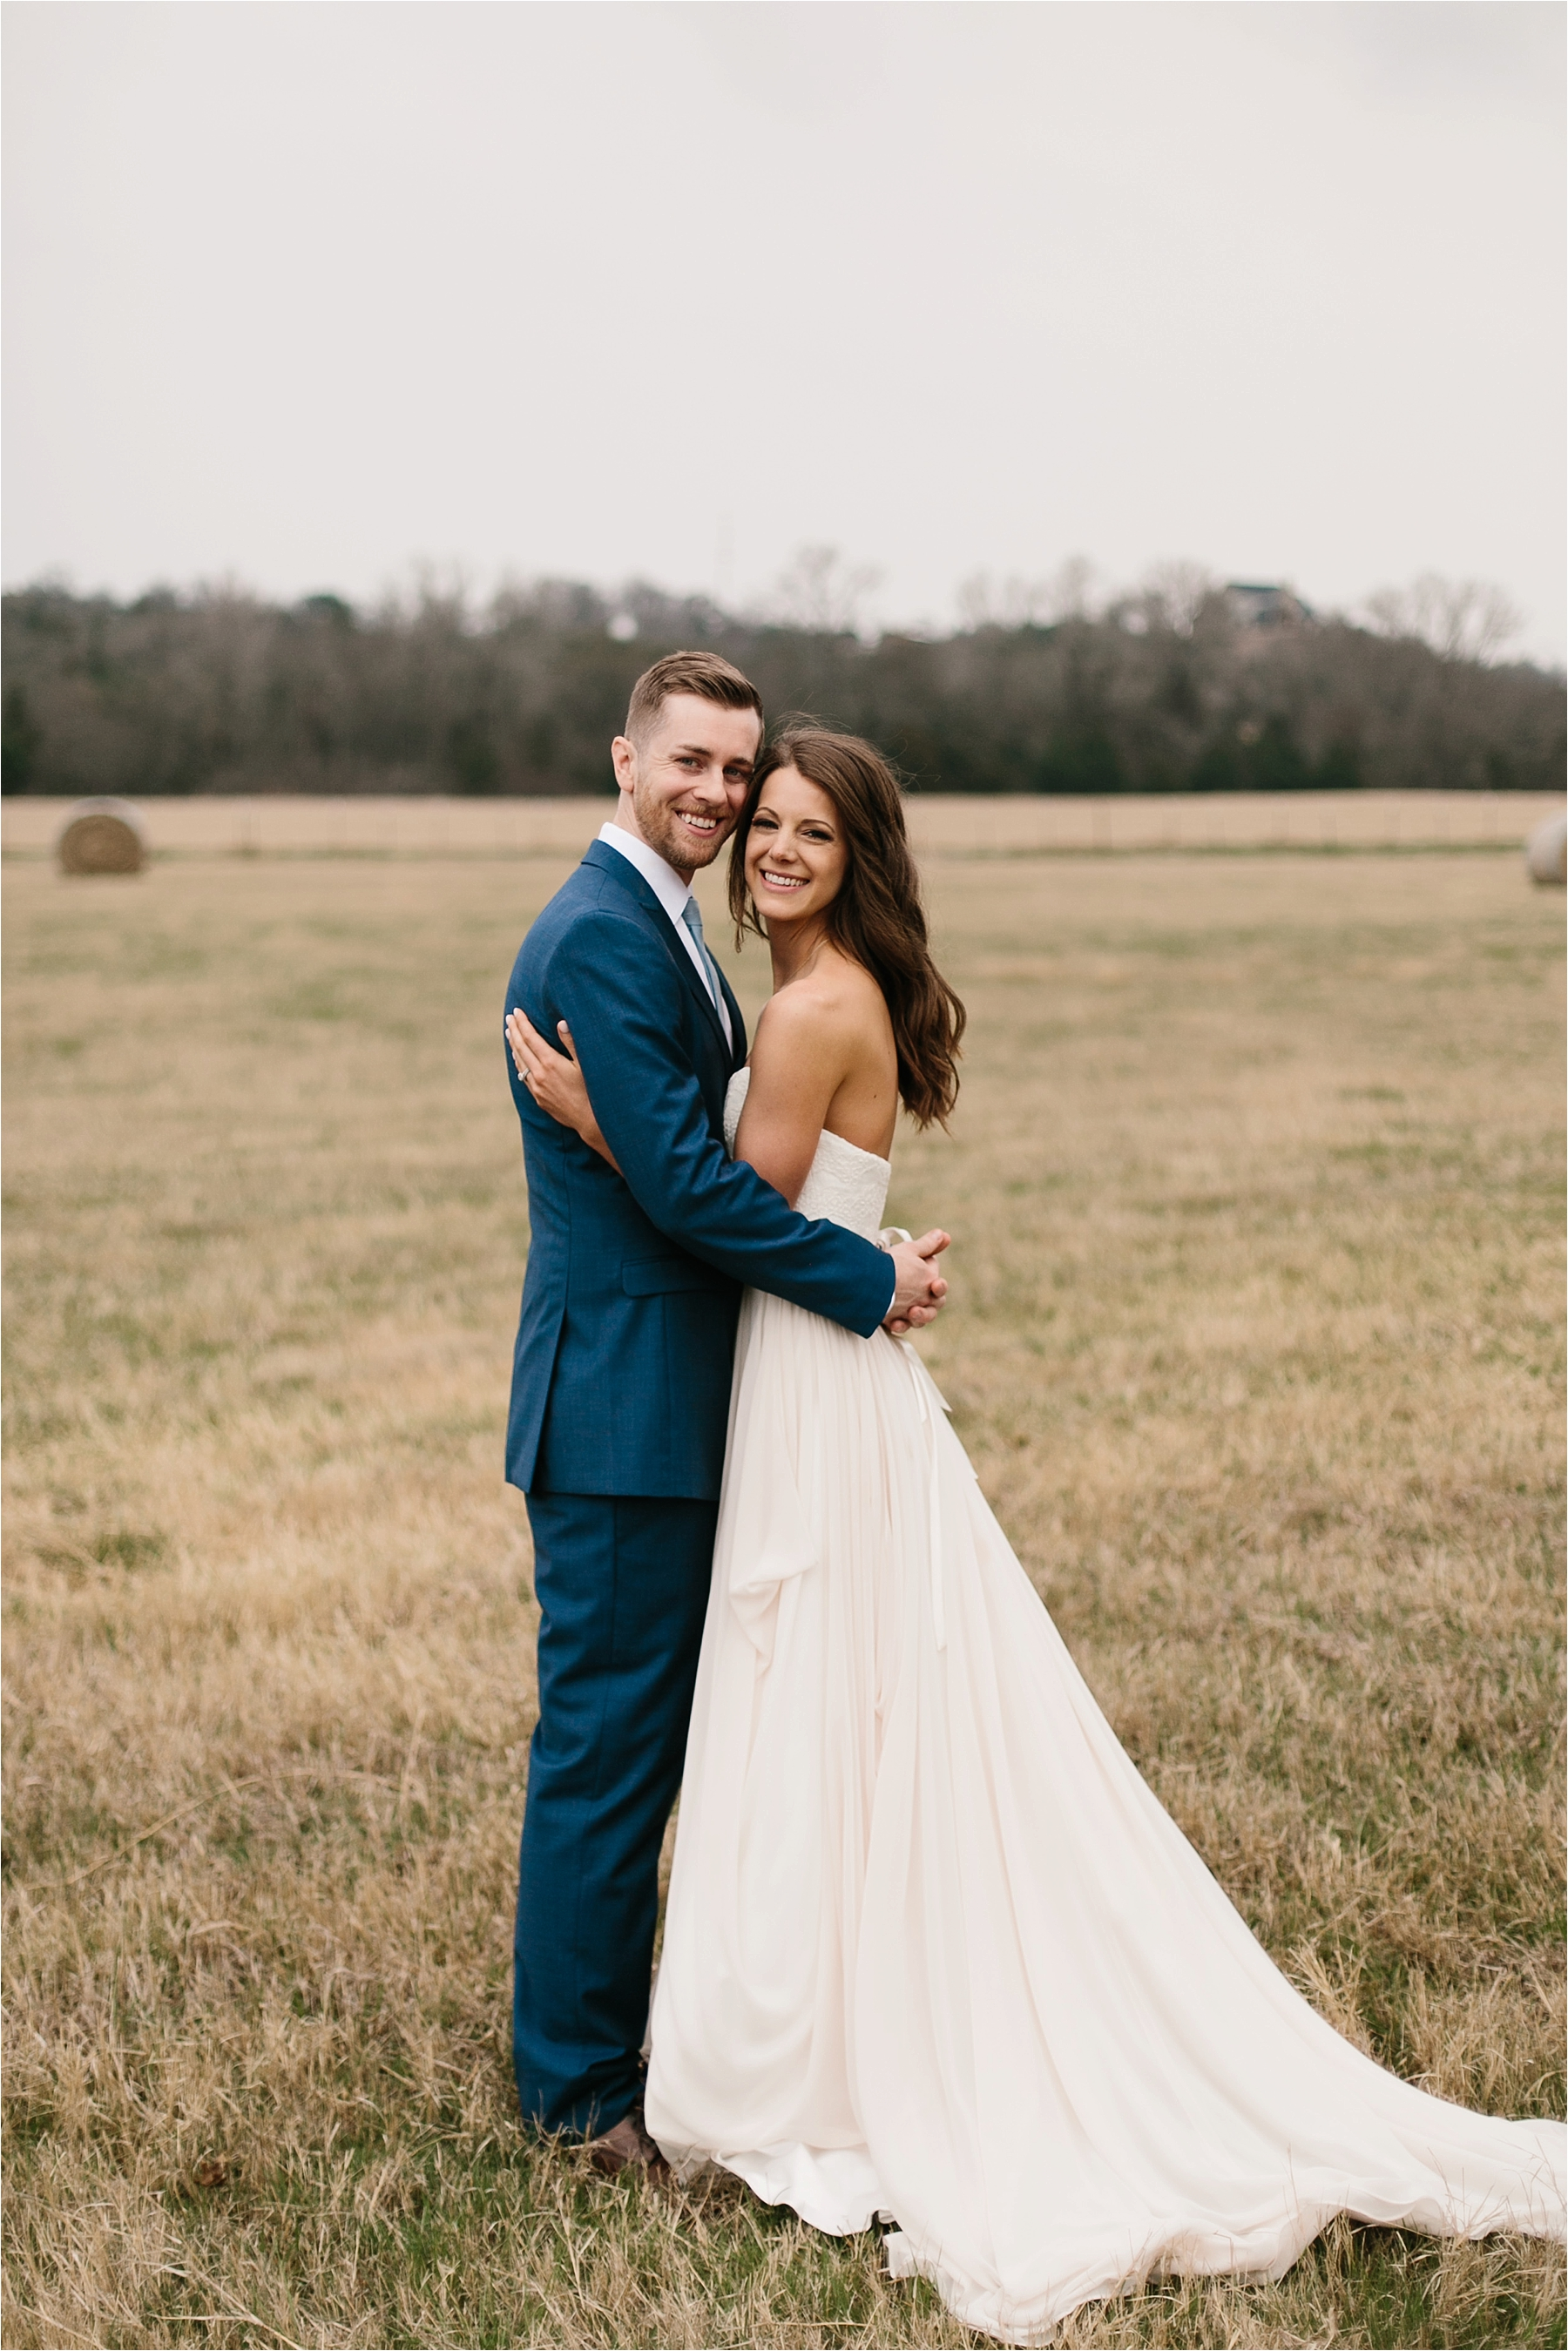 Lauren + Matt __ an intimate, emotional, blush pink, navy blue, and greenery toned wedding accents at the Brooks at Weatherford by North Texas Wedding Photographer Rachel Meagan Photography067